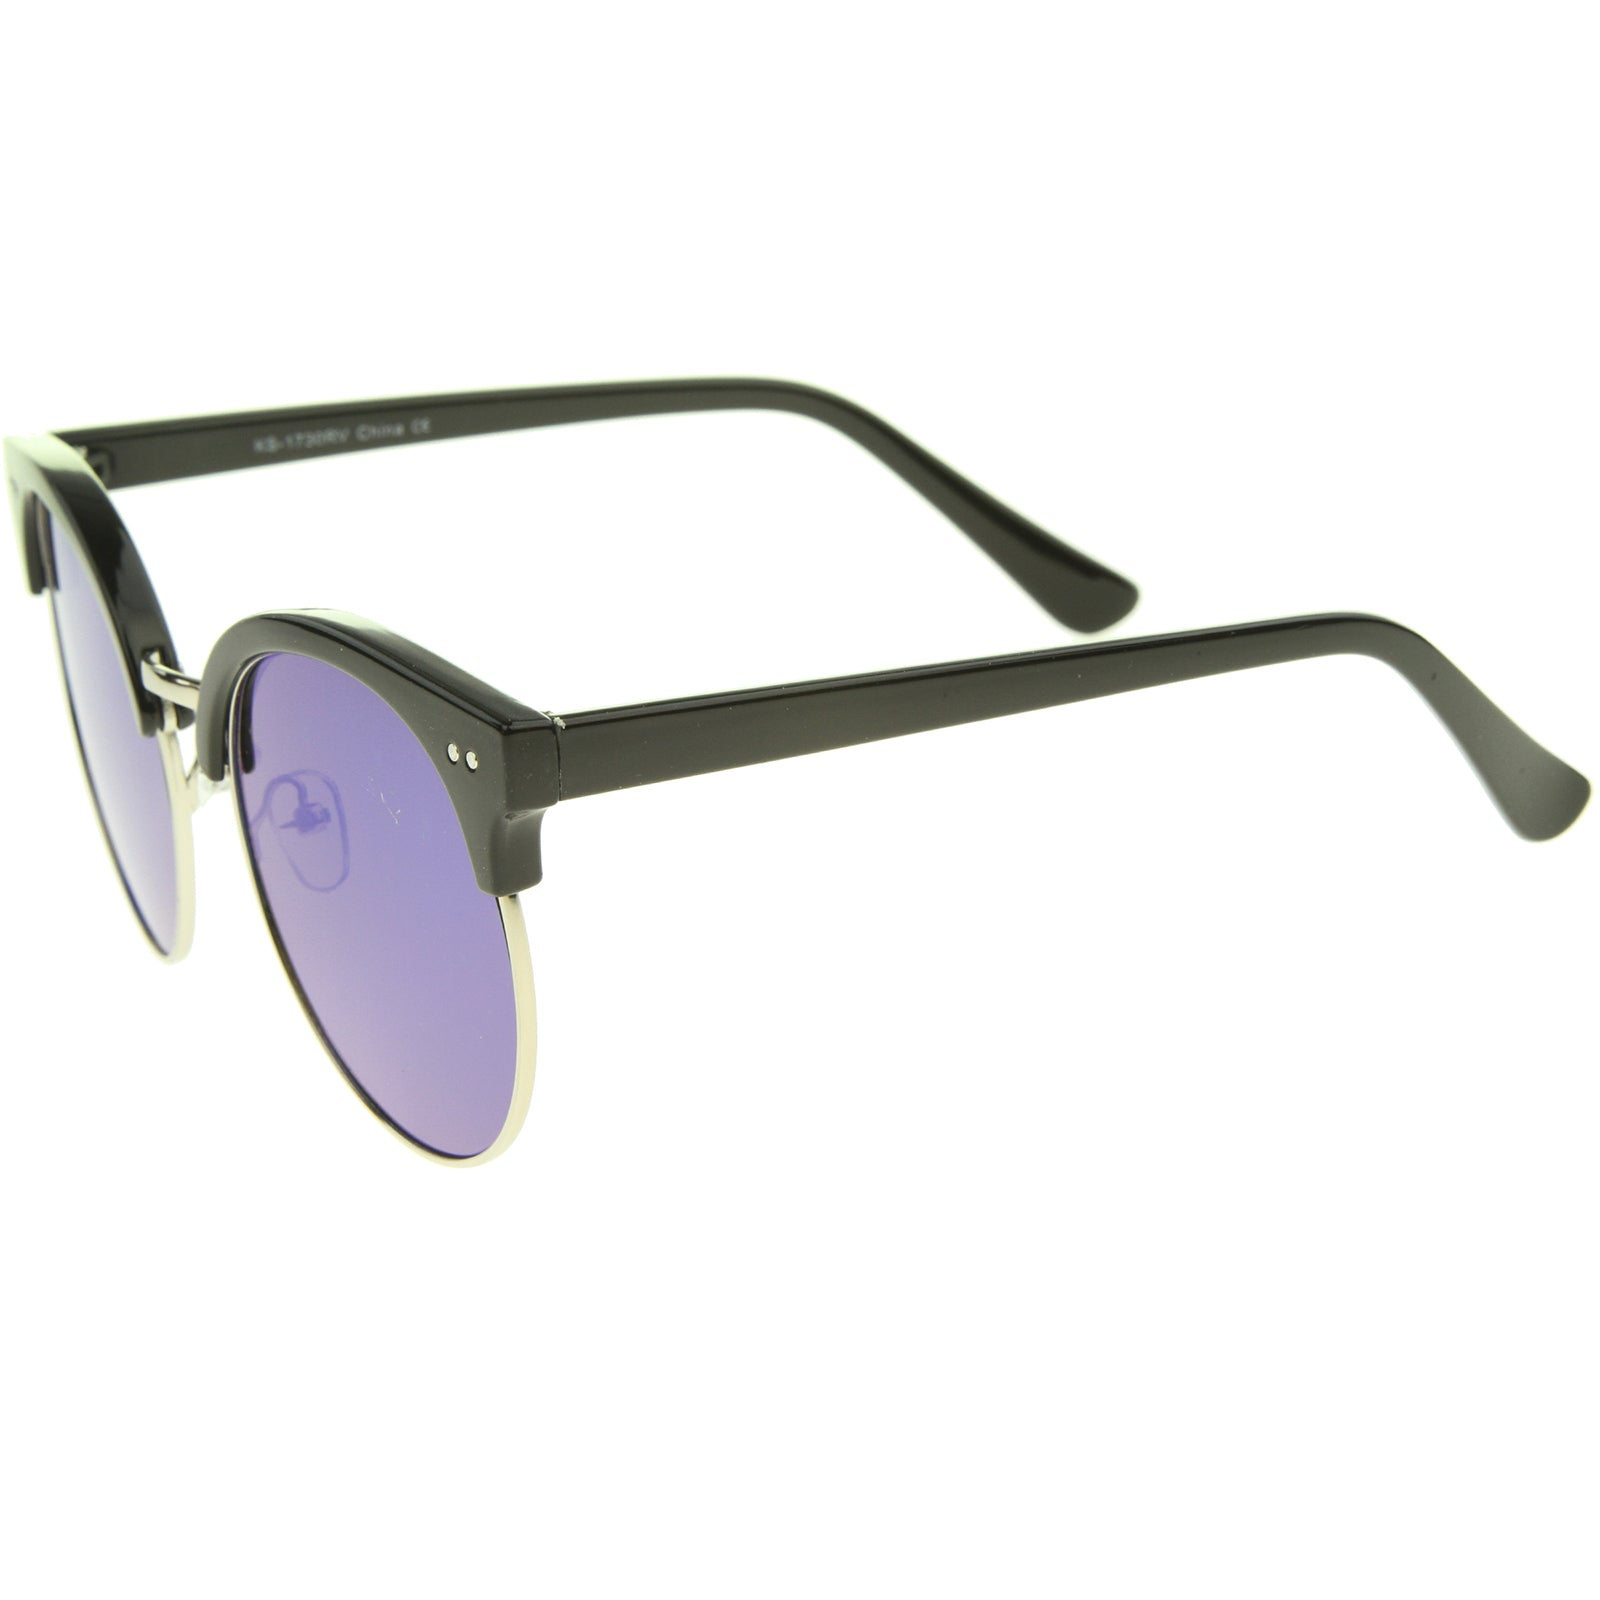 Womens Oversized Sunglasses With UV400 Protected Mirrored Lens - sunglass.la - 11